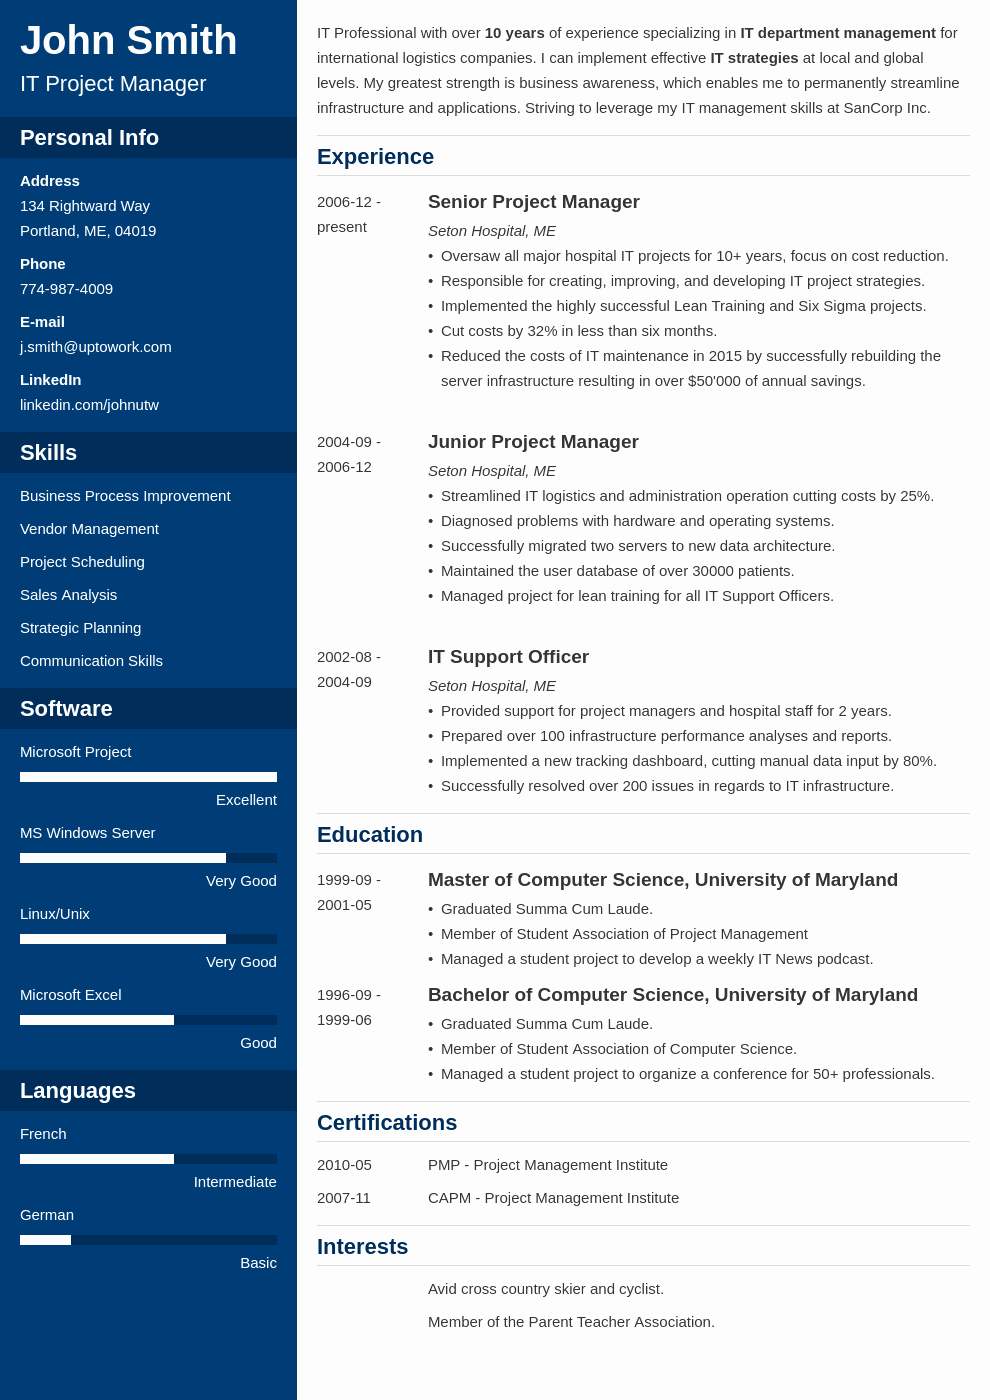 Professional Curriculum Vitae Template Download Awesome 20 Cv Templates Create Your Professional Cv In 5 Minutes